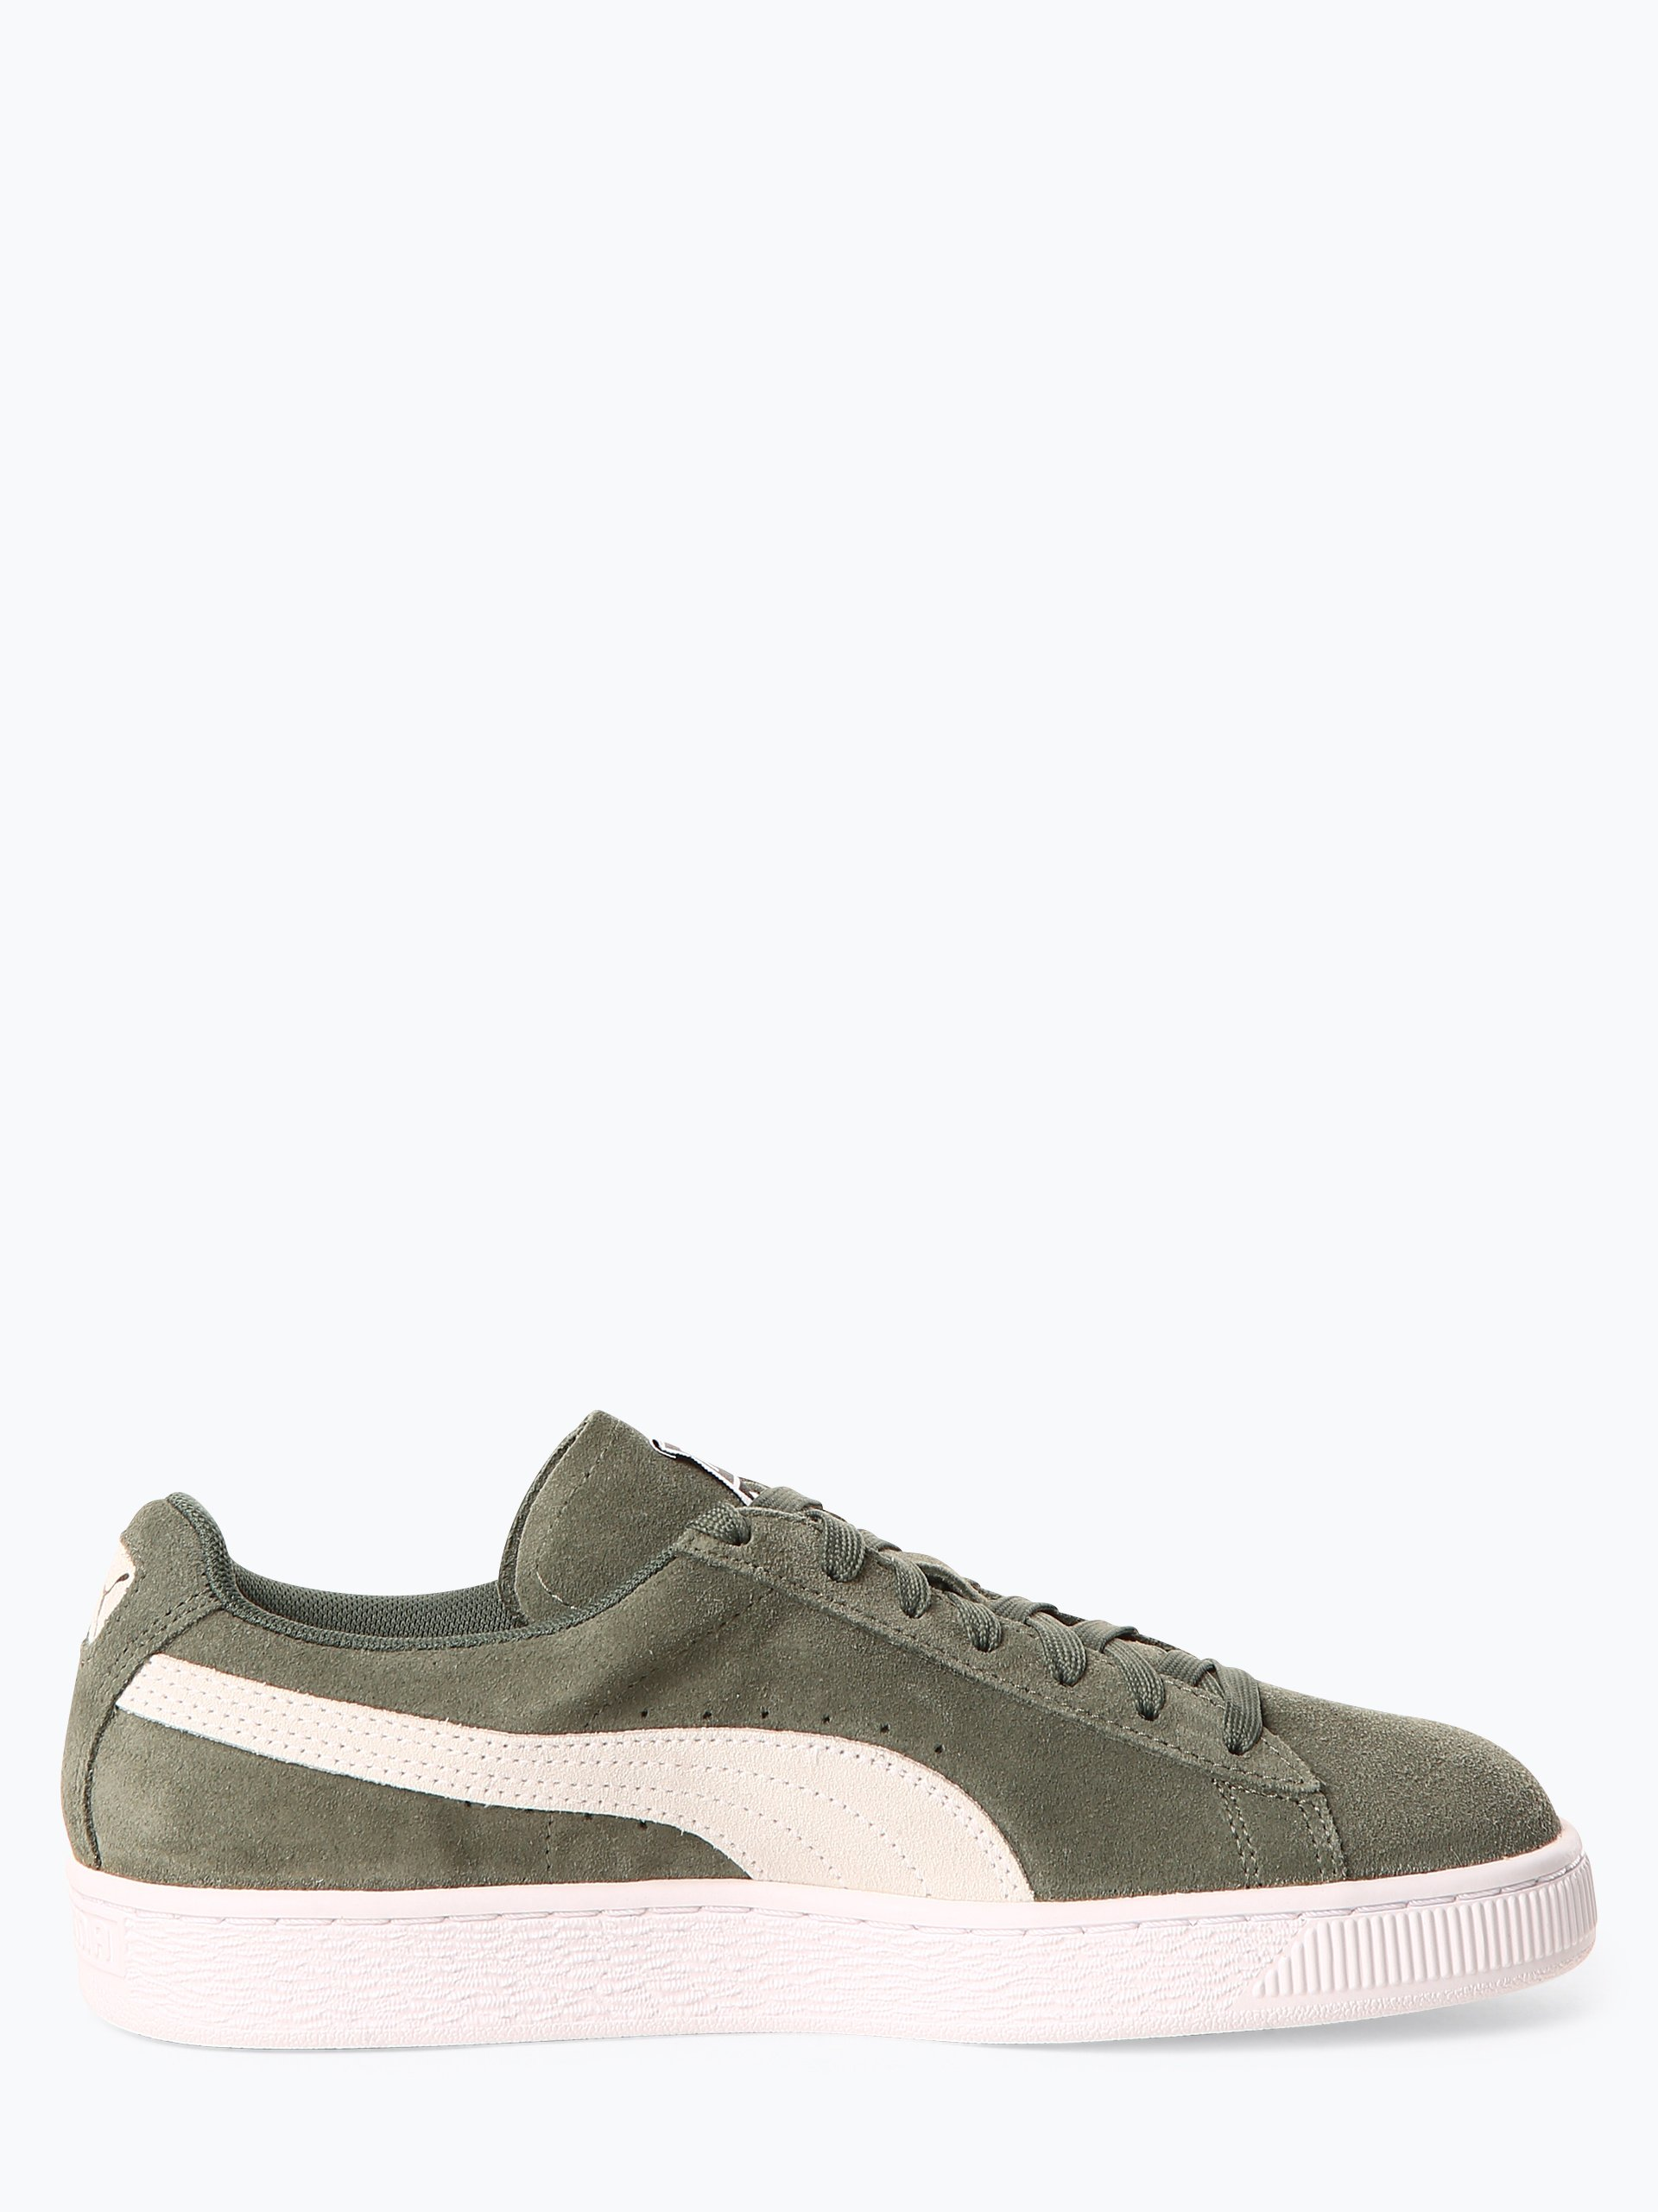 Puma Damen Sneaker aus Leder - Laurel Wreath